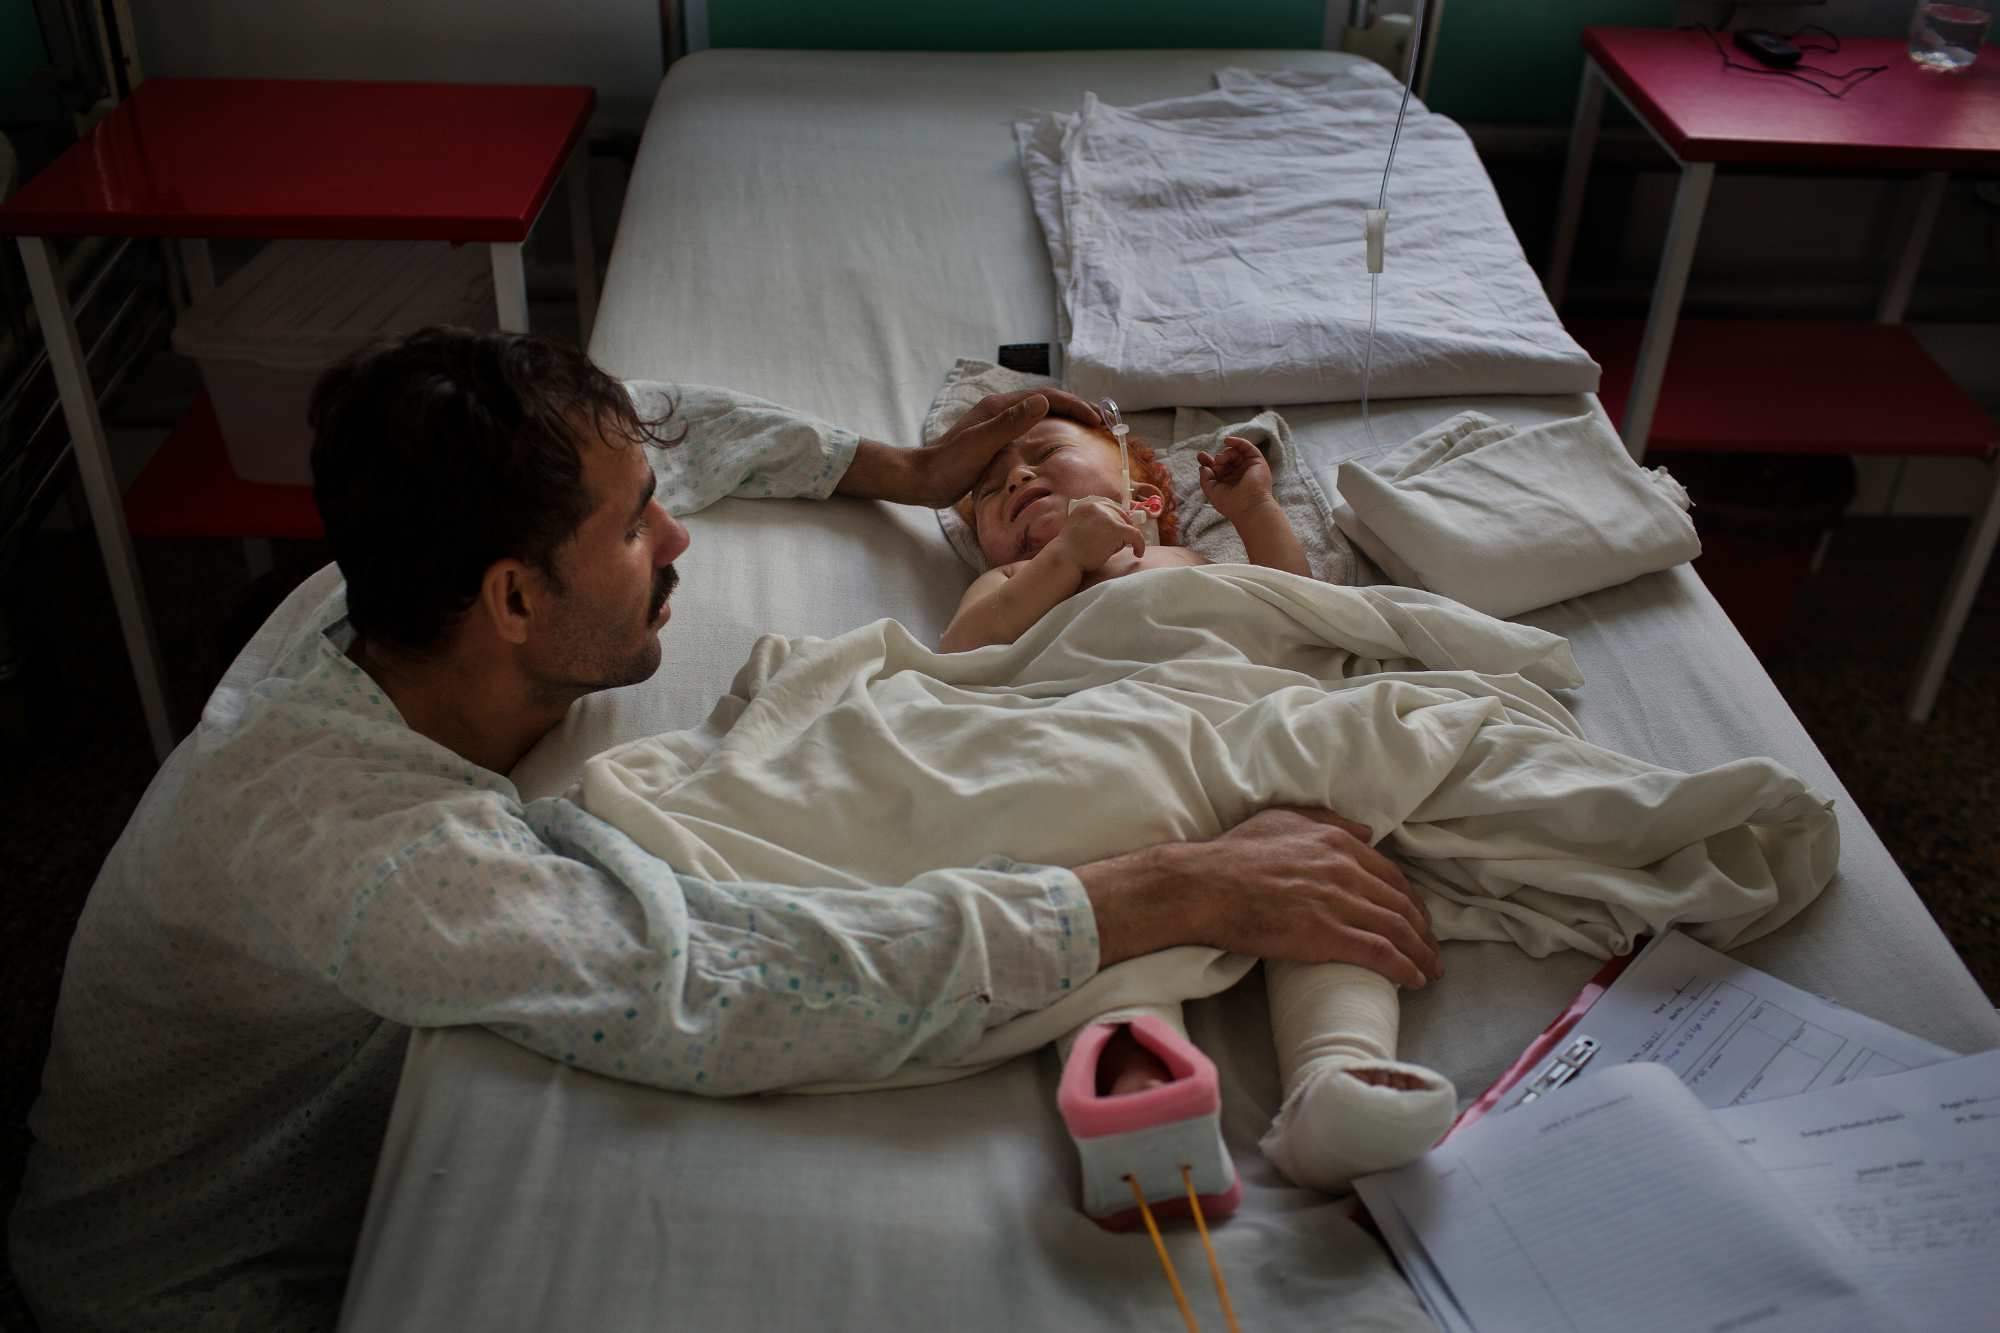 Abdullah, 8 months old, cries as his uncle comforts him. Abdullah came from Logar Province, where he was injured in a mine explosion that broke both of his legs and peppered him with shrapnel. His mother and father were killed in the blast.